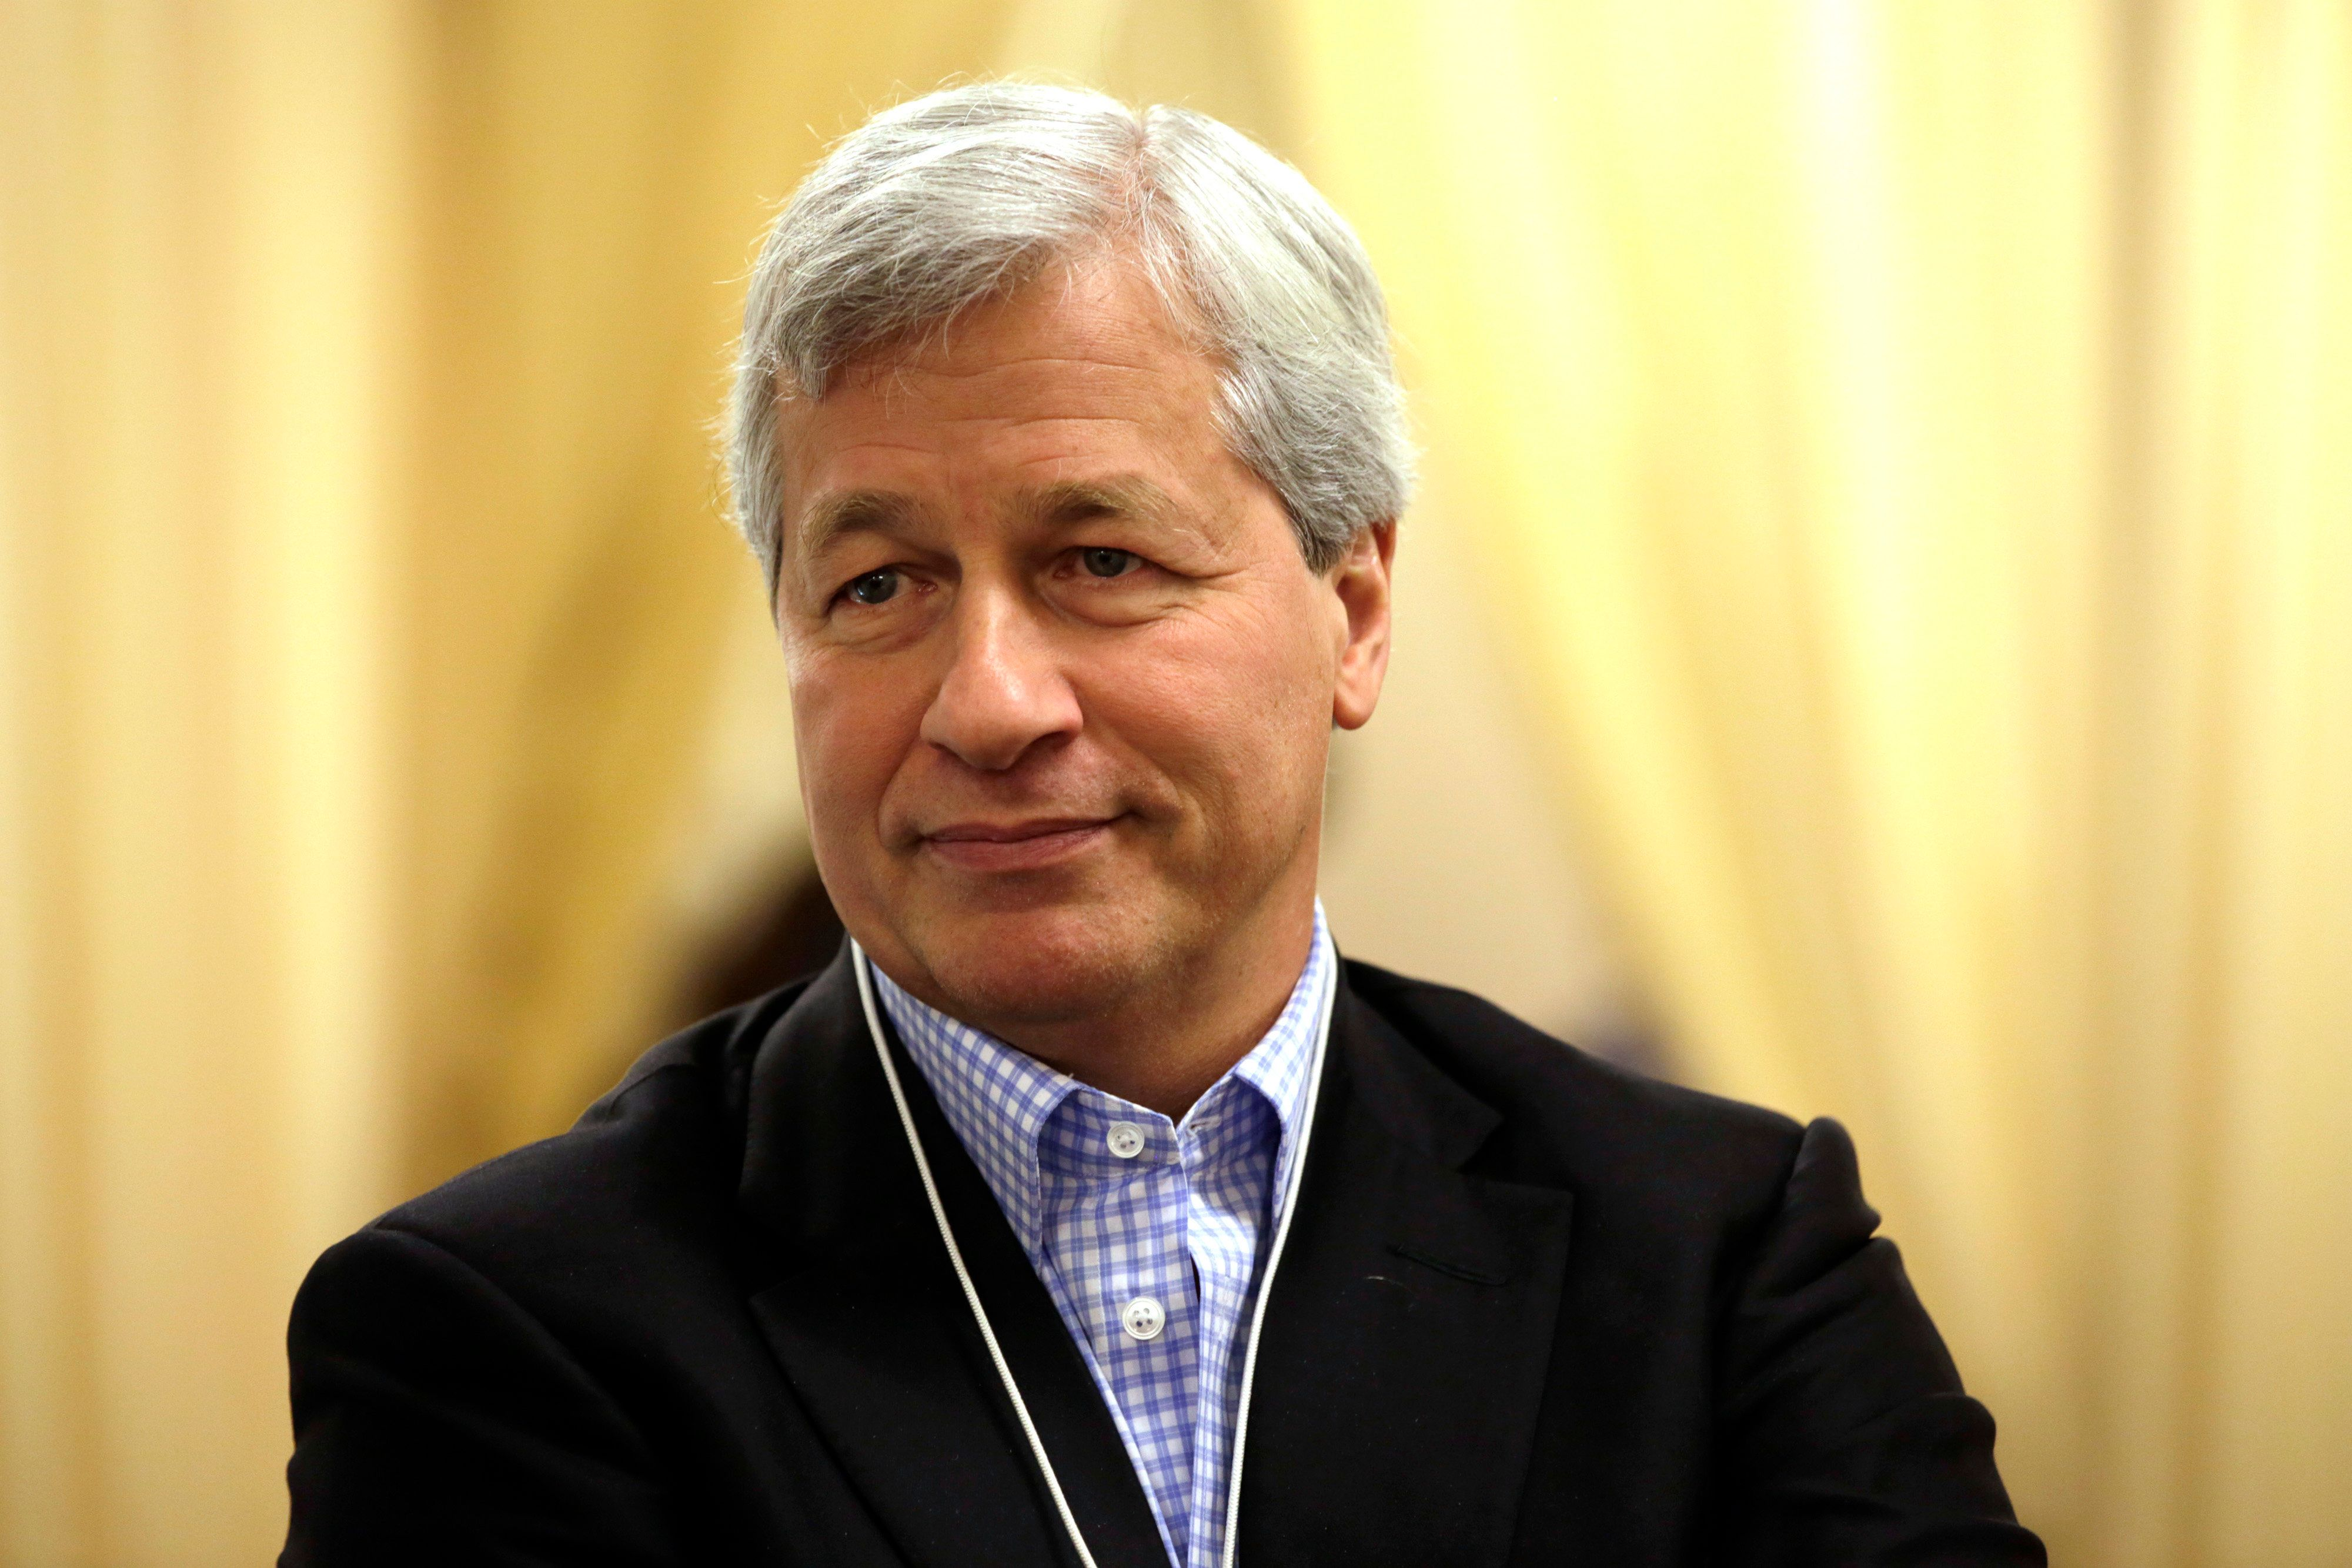 """<span class='image-component__caption' itemprop=""""caption"""">JPMorgan Chase Chief Executive Officer Jamie Dimon</span>"""